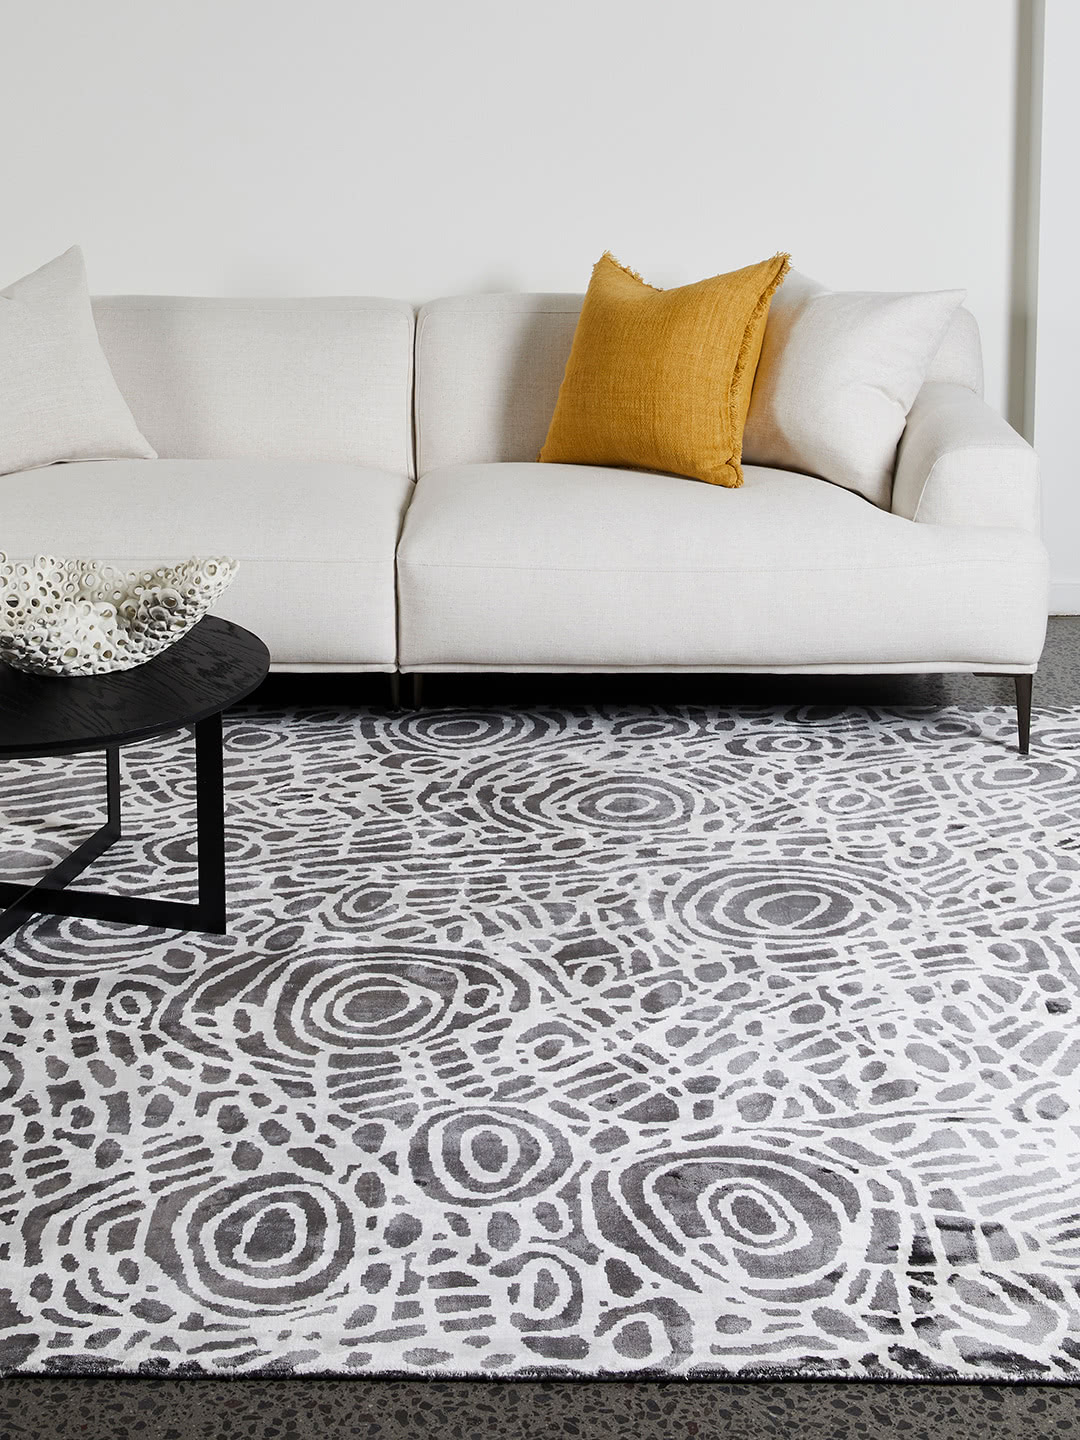 Kwerralya by Charmaine Pwerle - Indigenours rug design with black and white pattern - lifestyle image